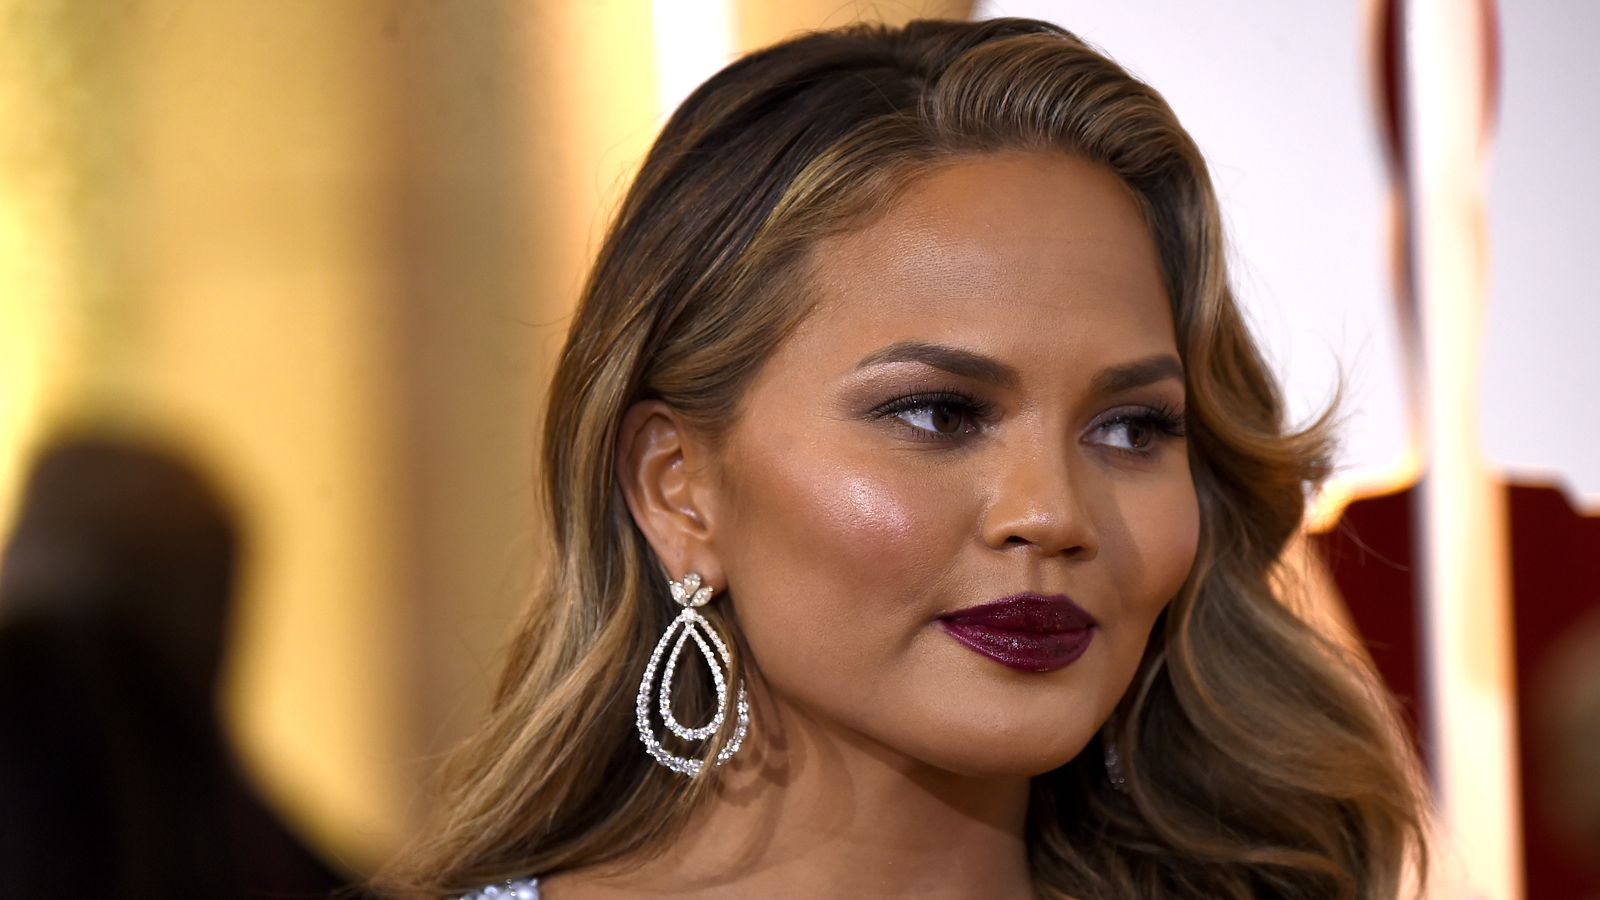 203m Followers 1032 Following 3405 Posts See Instagram photos and videos from chrissy teigen chrissyteigen